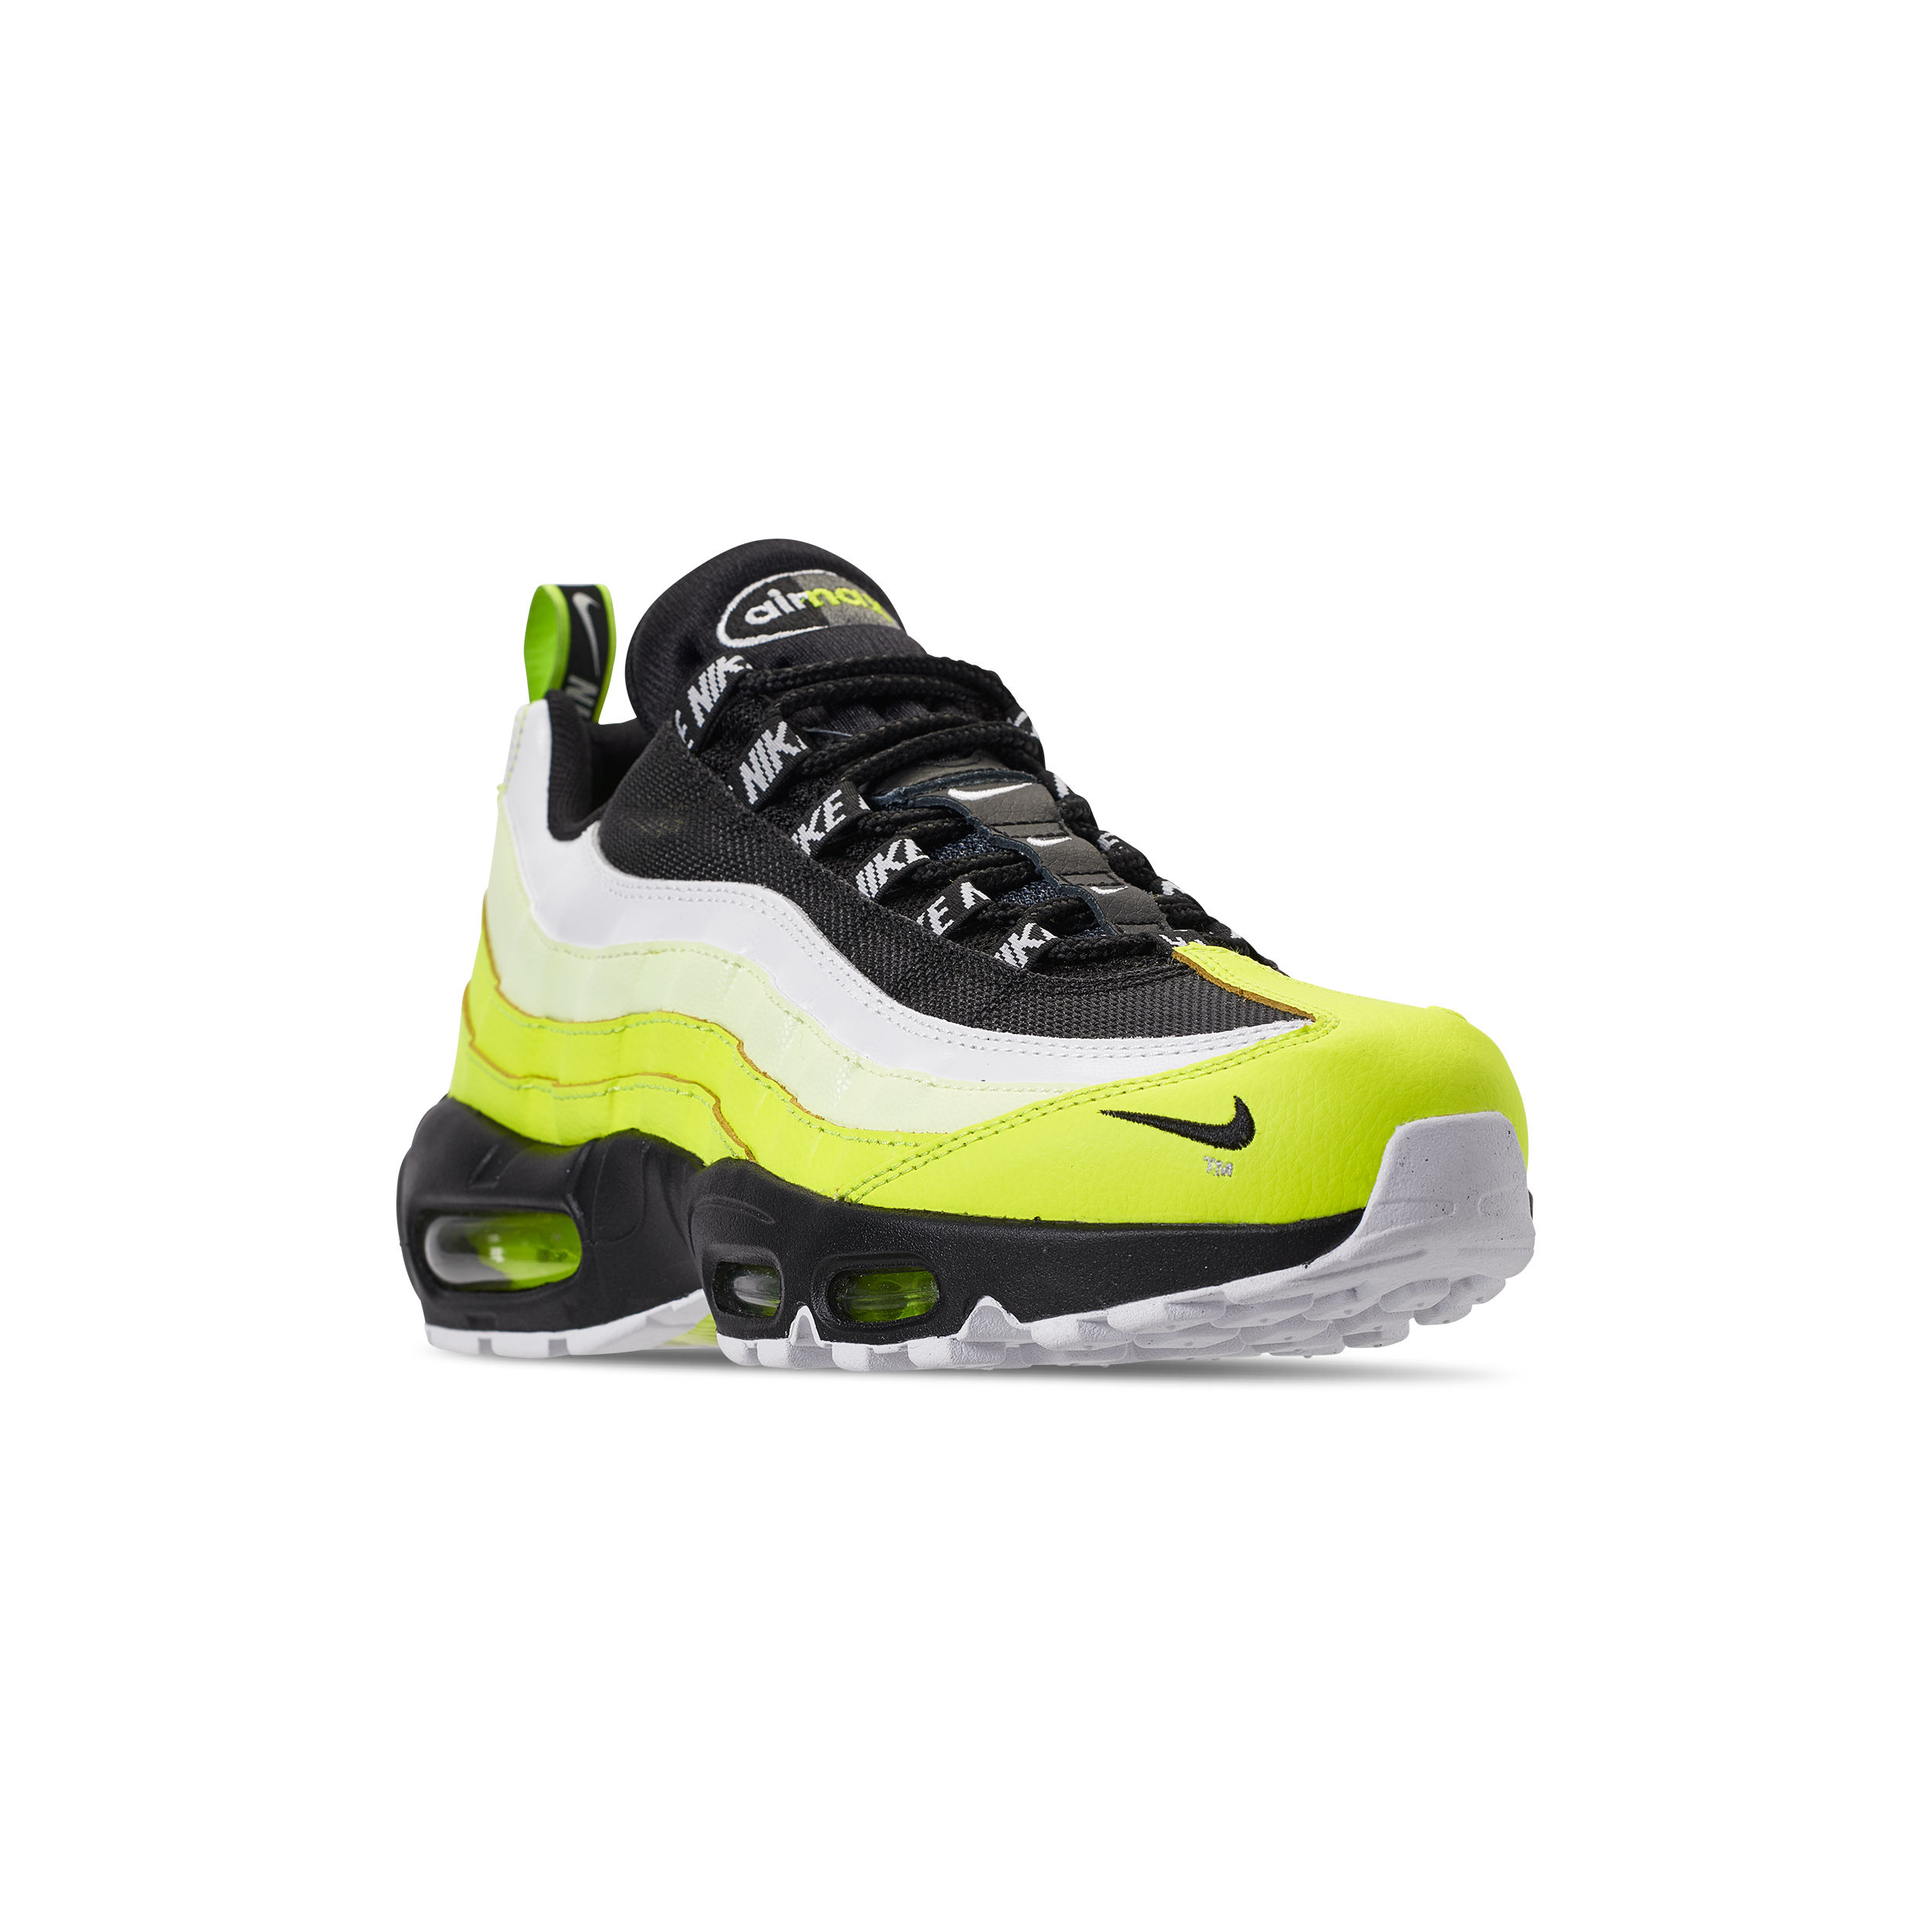 best website 976ab eaeb0 NIKE AIR MAX 95 PREMIUM VOLT   BLACK-VOLT GLOW-BARELY VOLT OFF WHITE 1